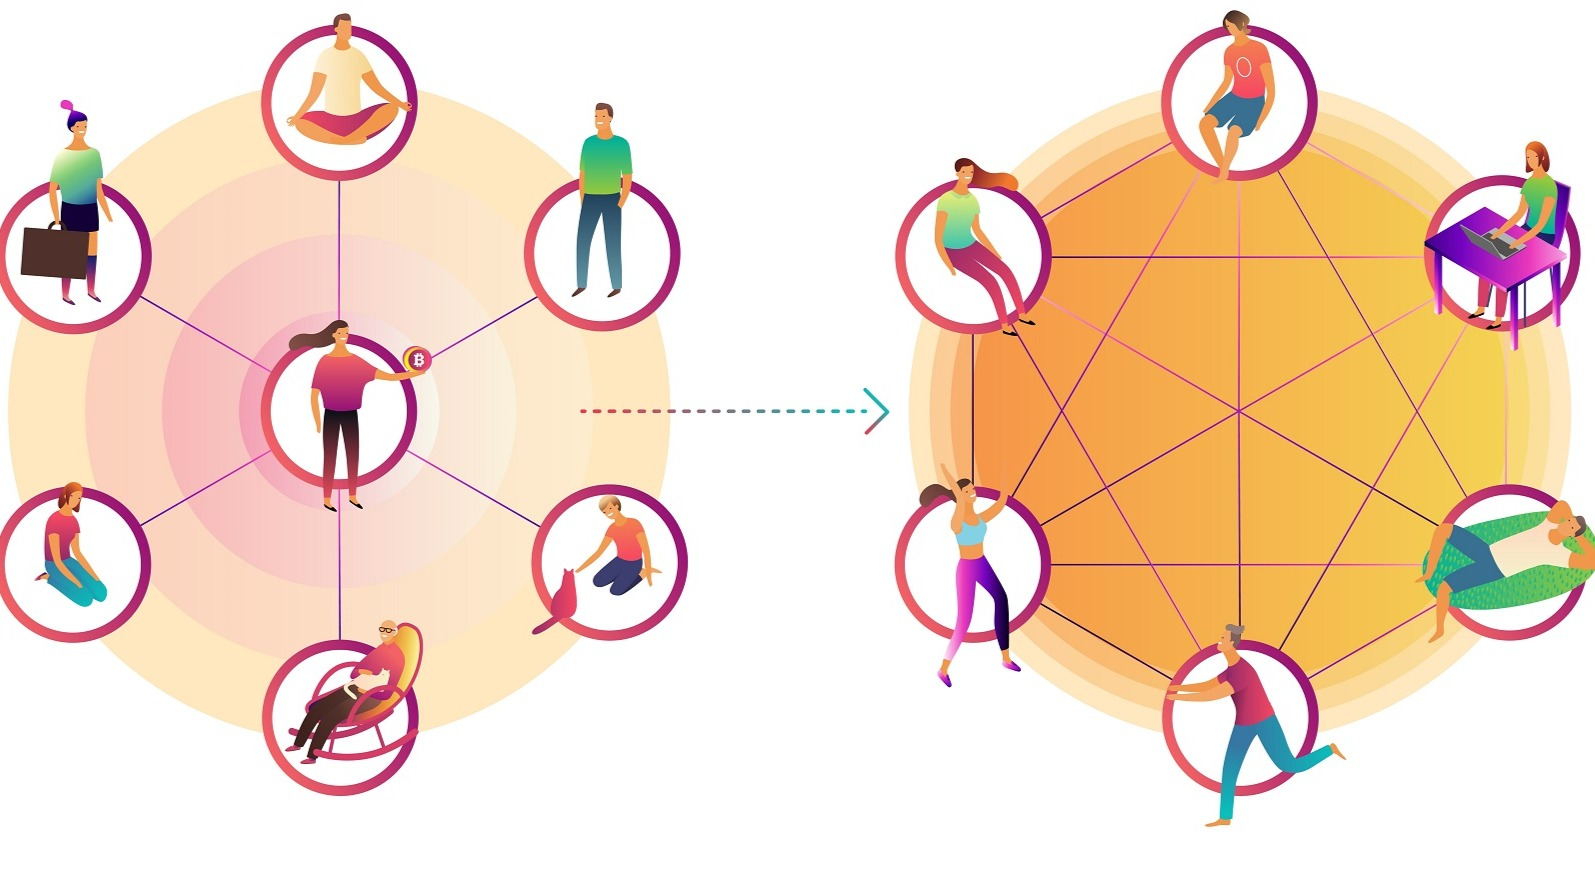 Shifting from Centralized to Decentralized Social Sharing